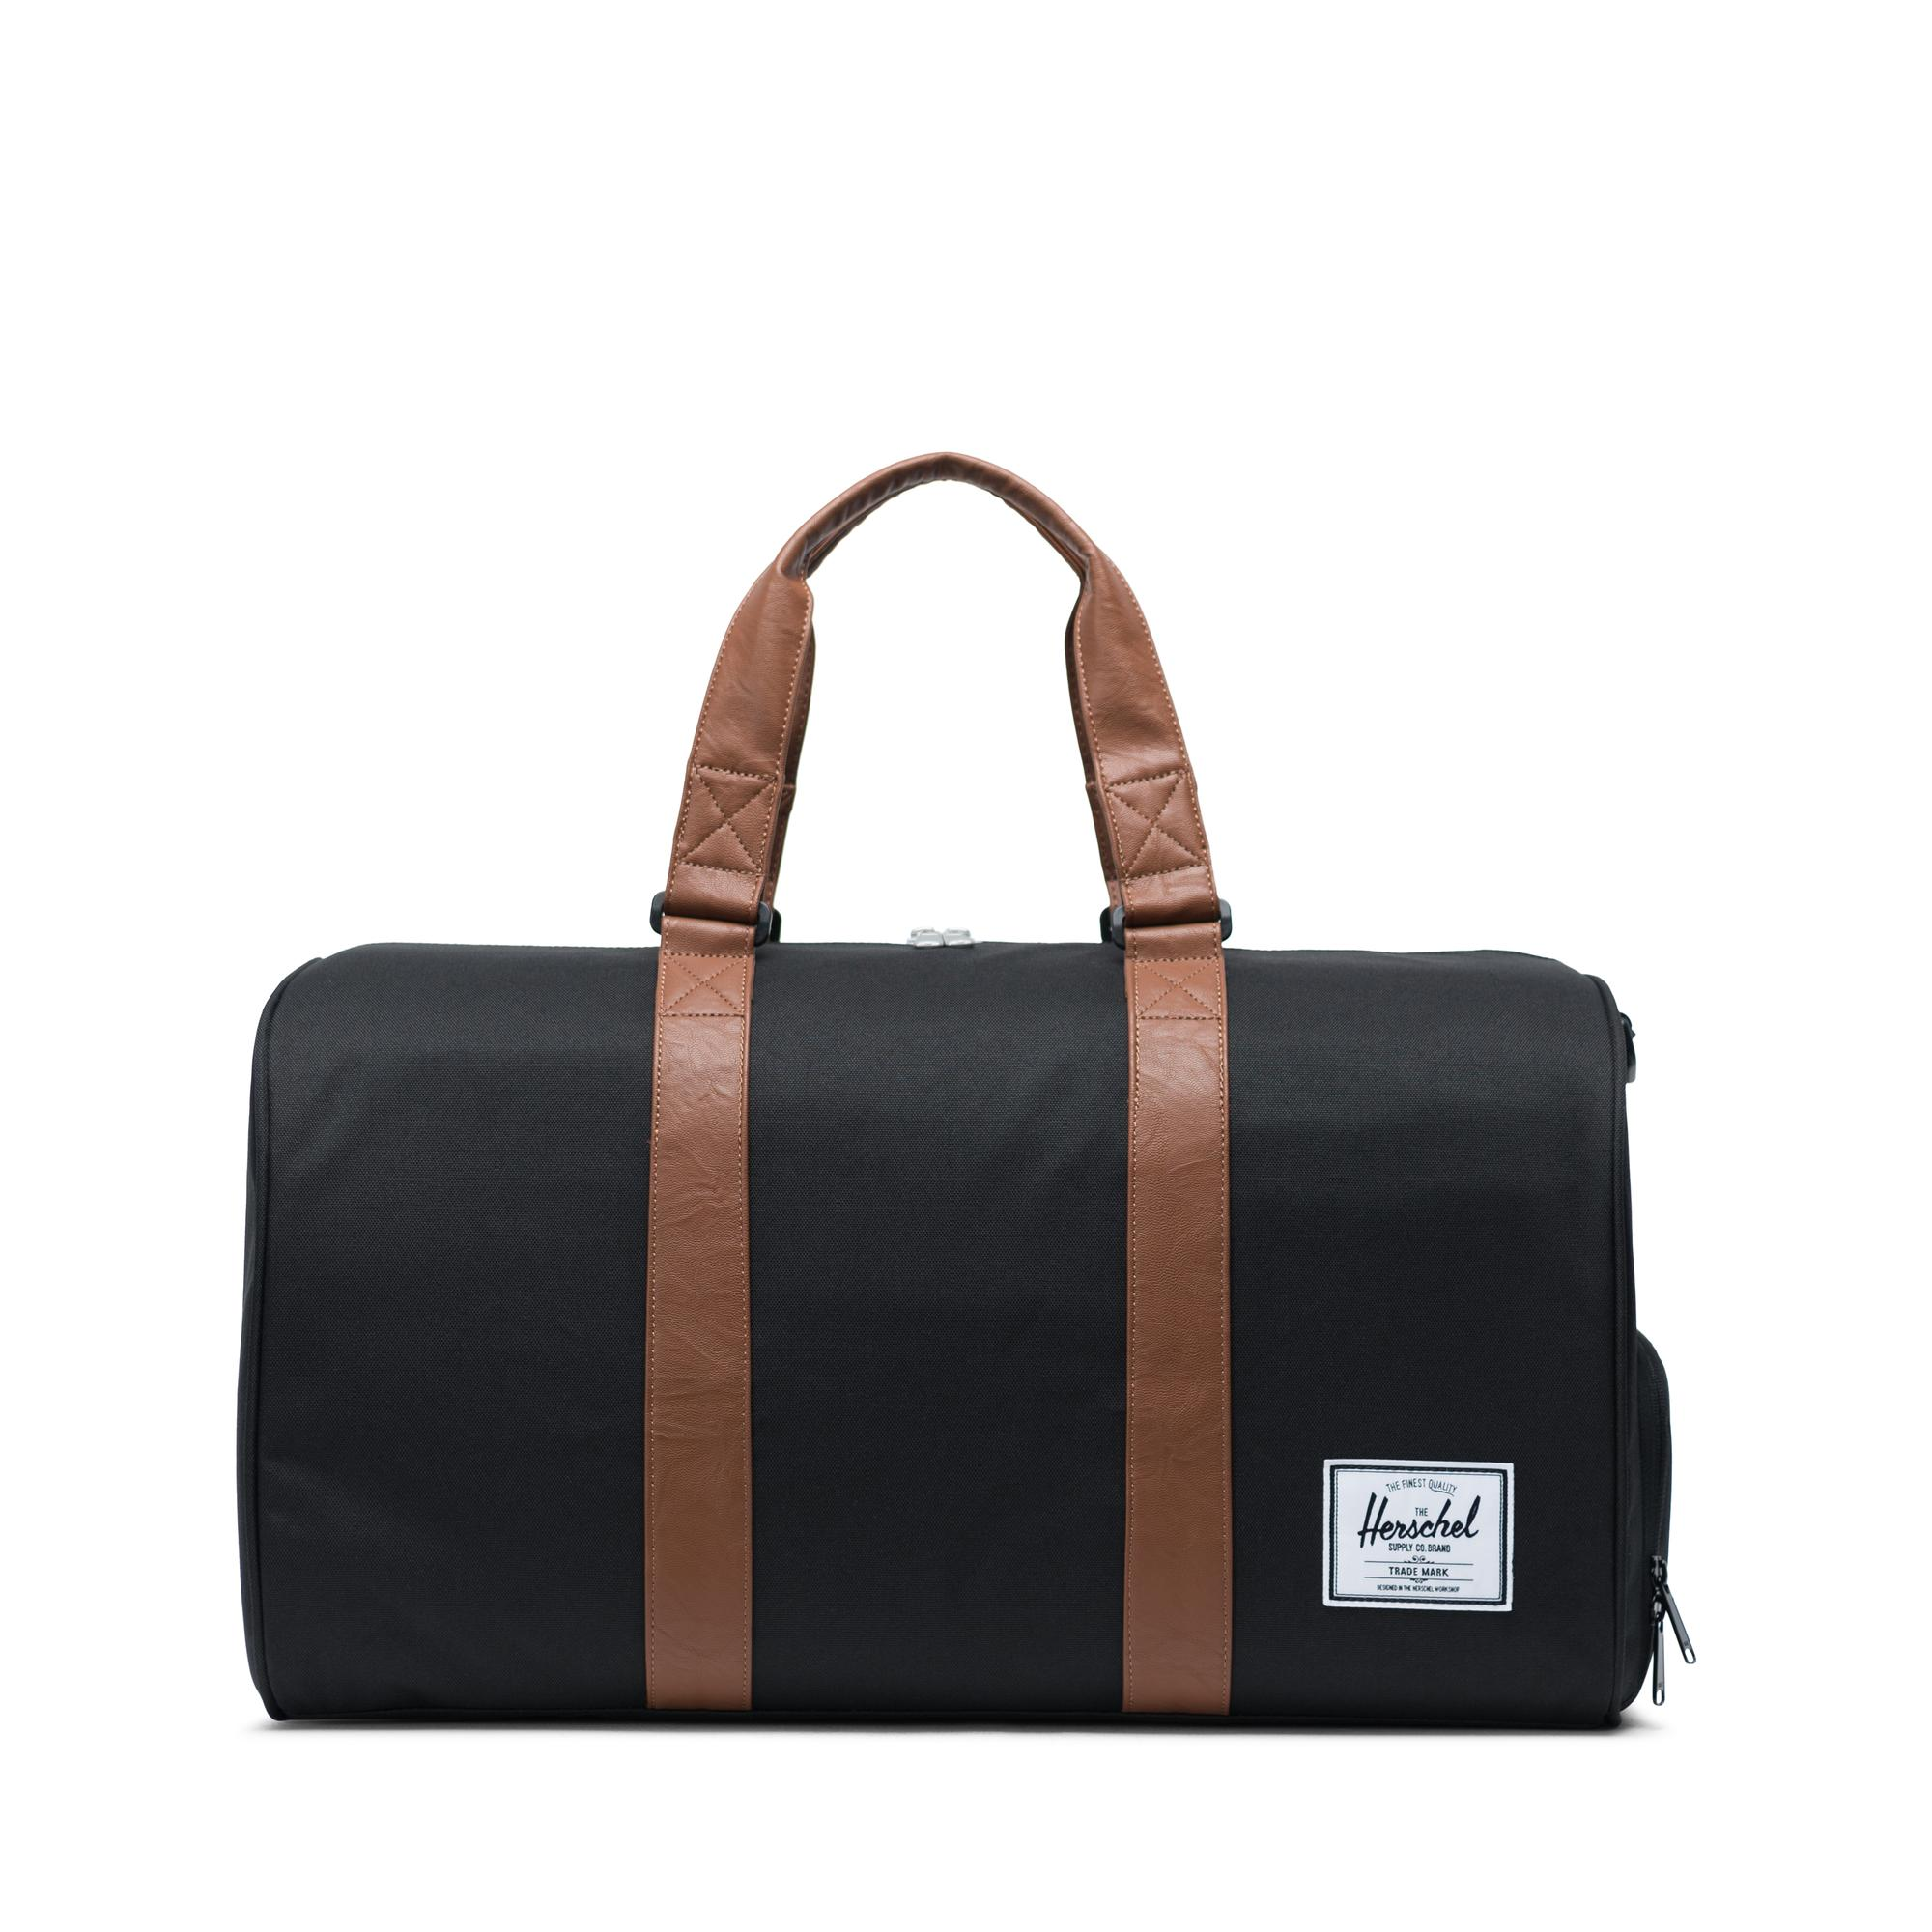 b932755427 Novel Duffle